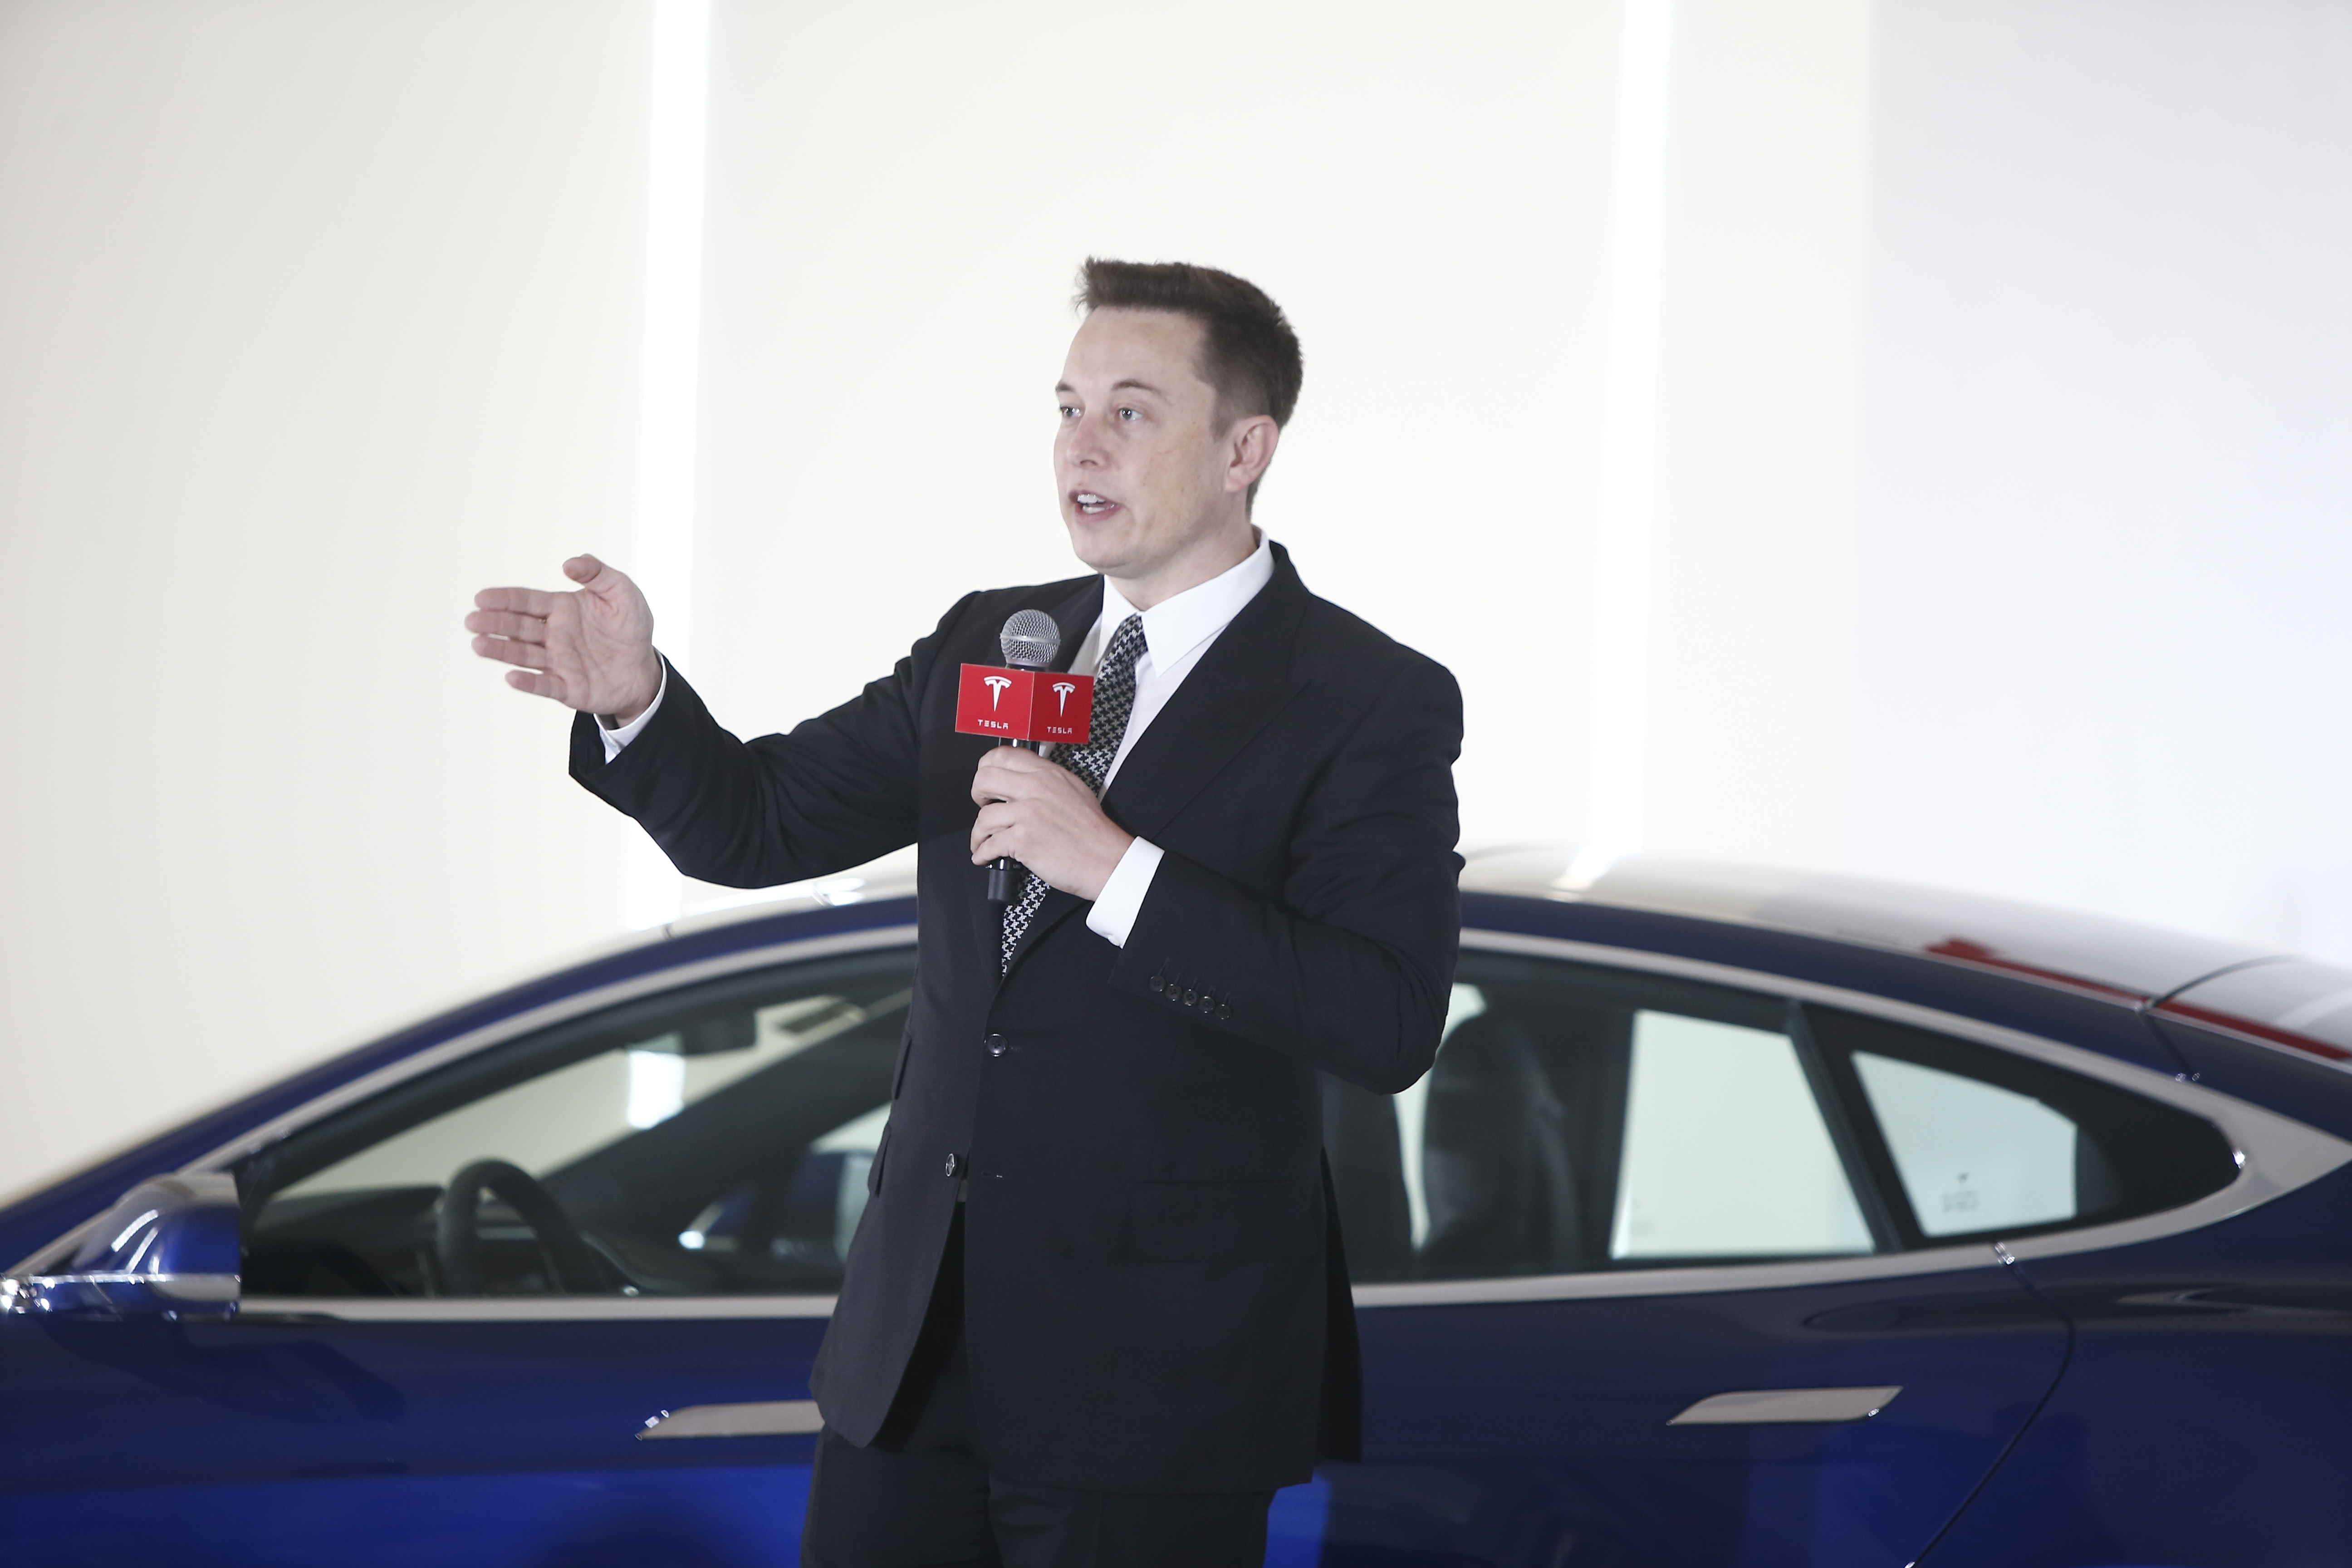 'It's very exciting,' said Elon Musk, chairman, CEO and product Architect of Tesla Motors, during a conference call Wednesday evening. 'Definitely one of the best moments ever for Tesla.'  (Photo by VCG/VCG via Getty Images)